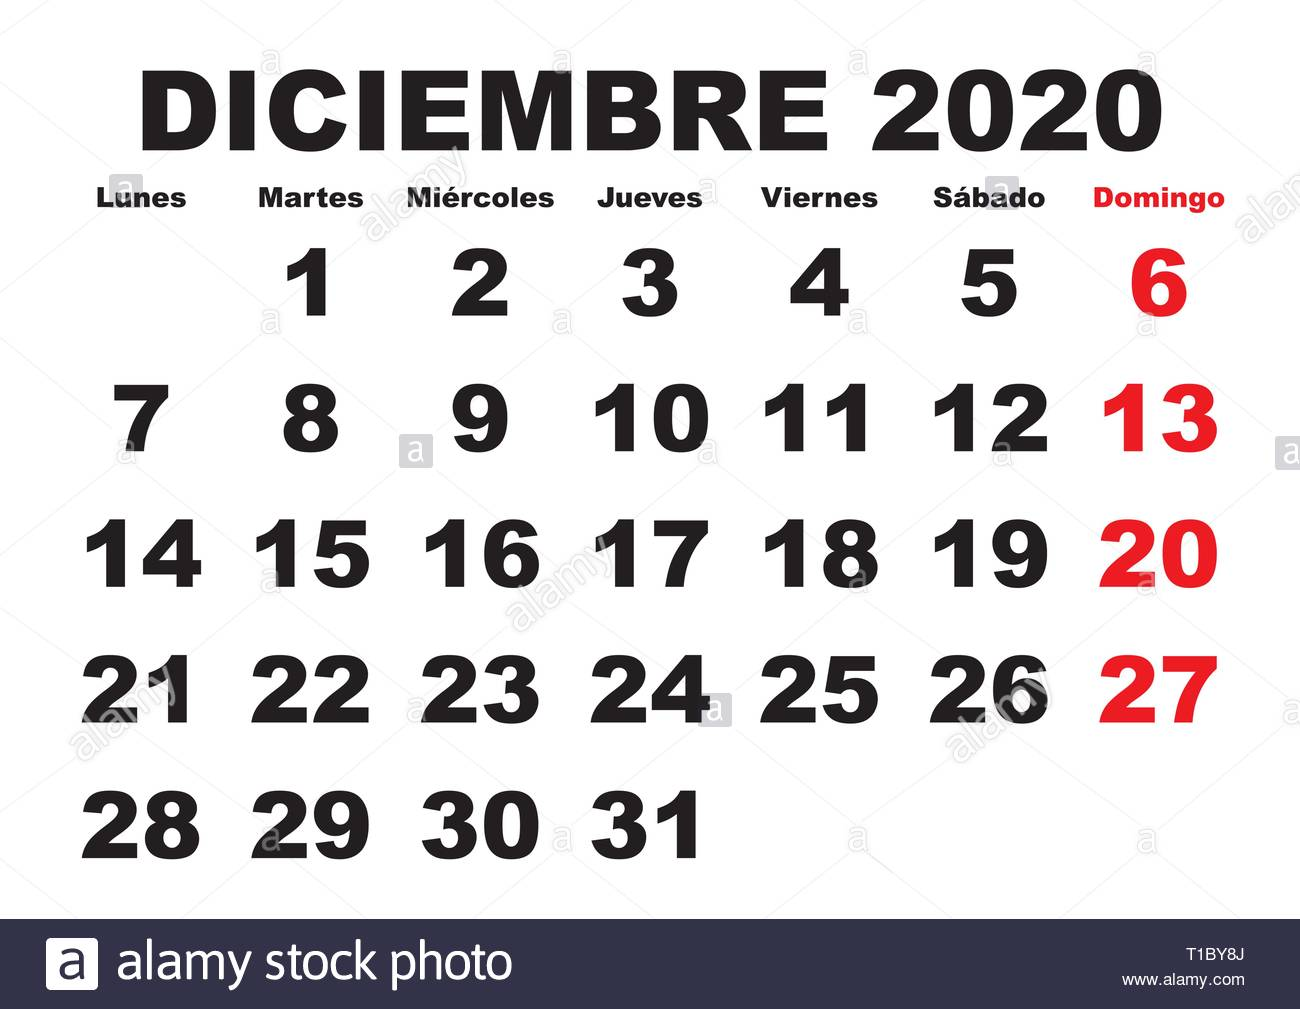 Calendario Diciembre 2020.December Month In A Year 2020 Wall Calendar In Spanish